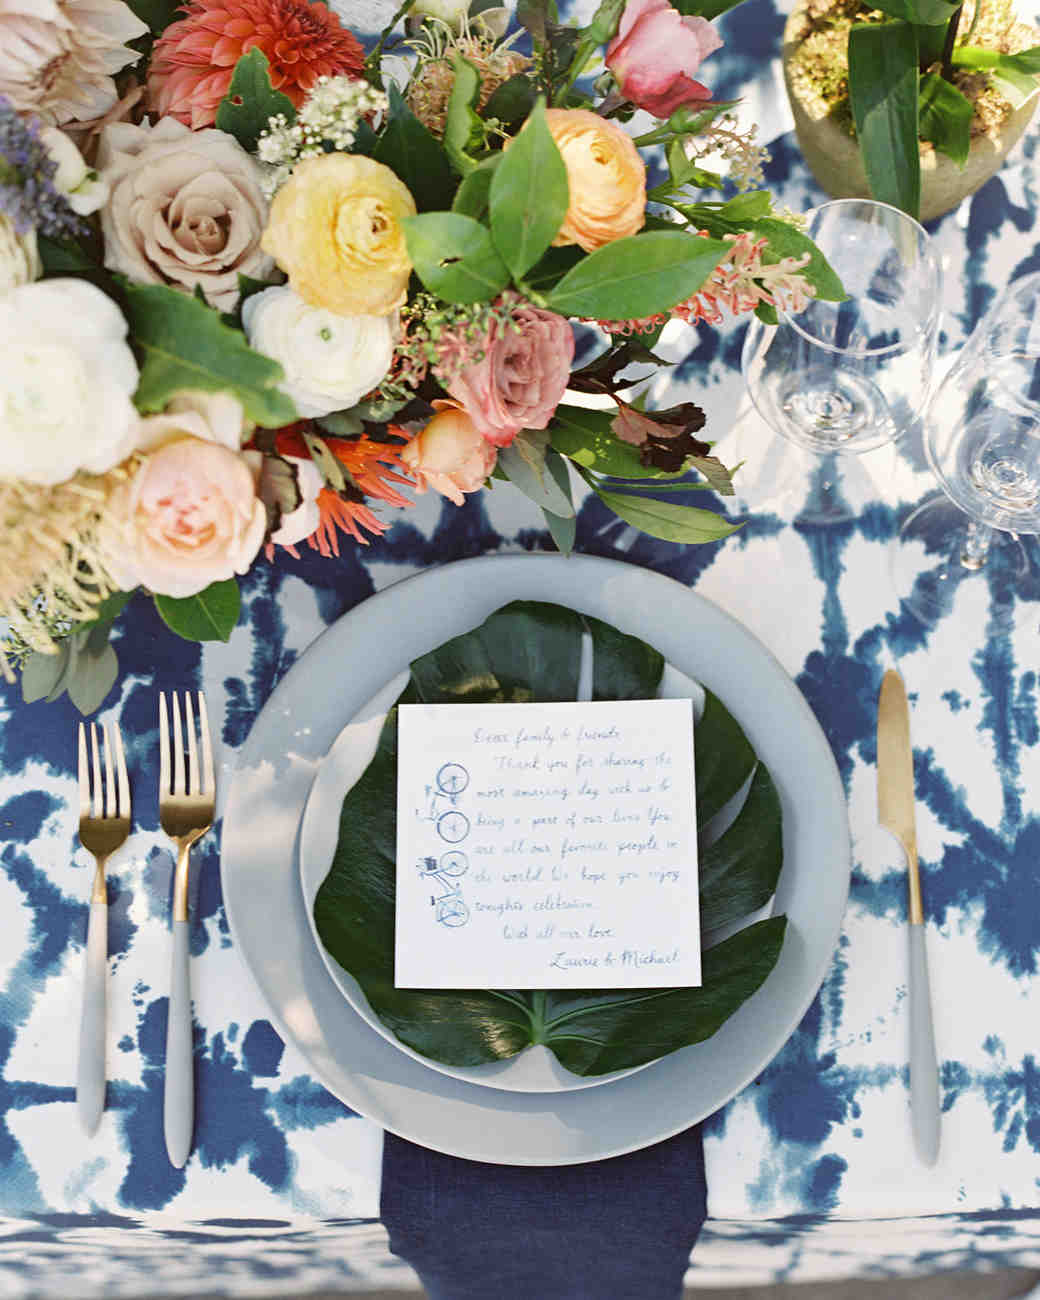 laurie michael wedding place setting with monstera leaf